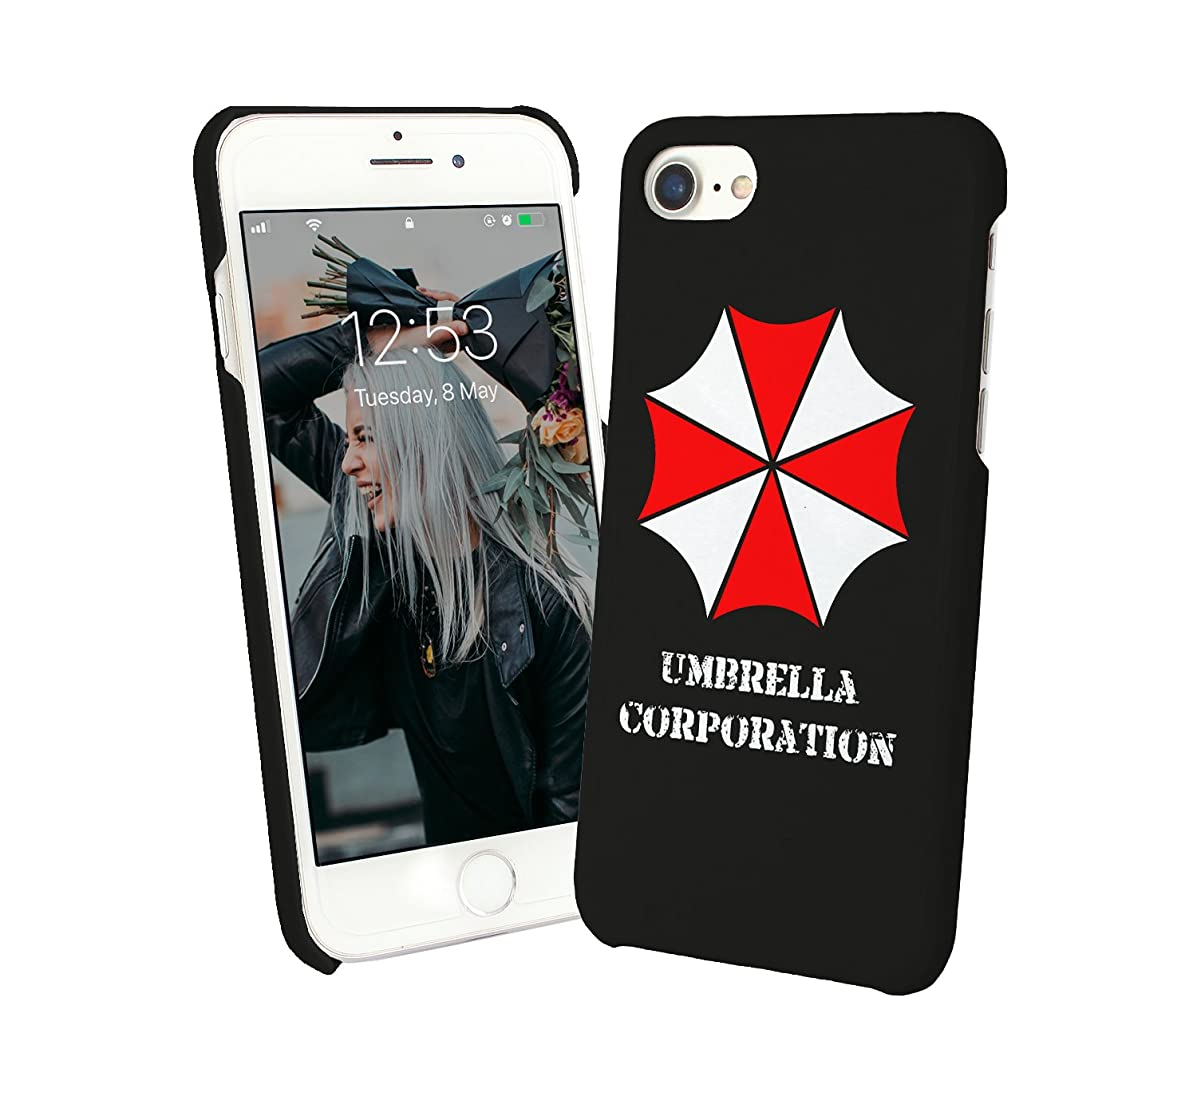 Umbrella Corporation Funny Quote Rain Days Sun Happiness Protective Case Cover Hard Plastic iPhone XR (2018) Funny Gift Christmas for Him for Her